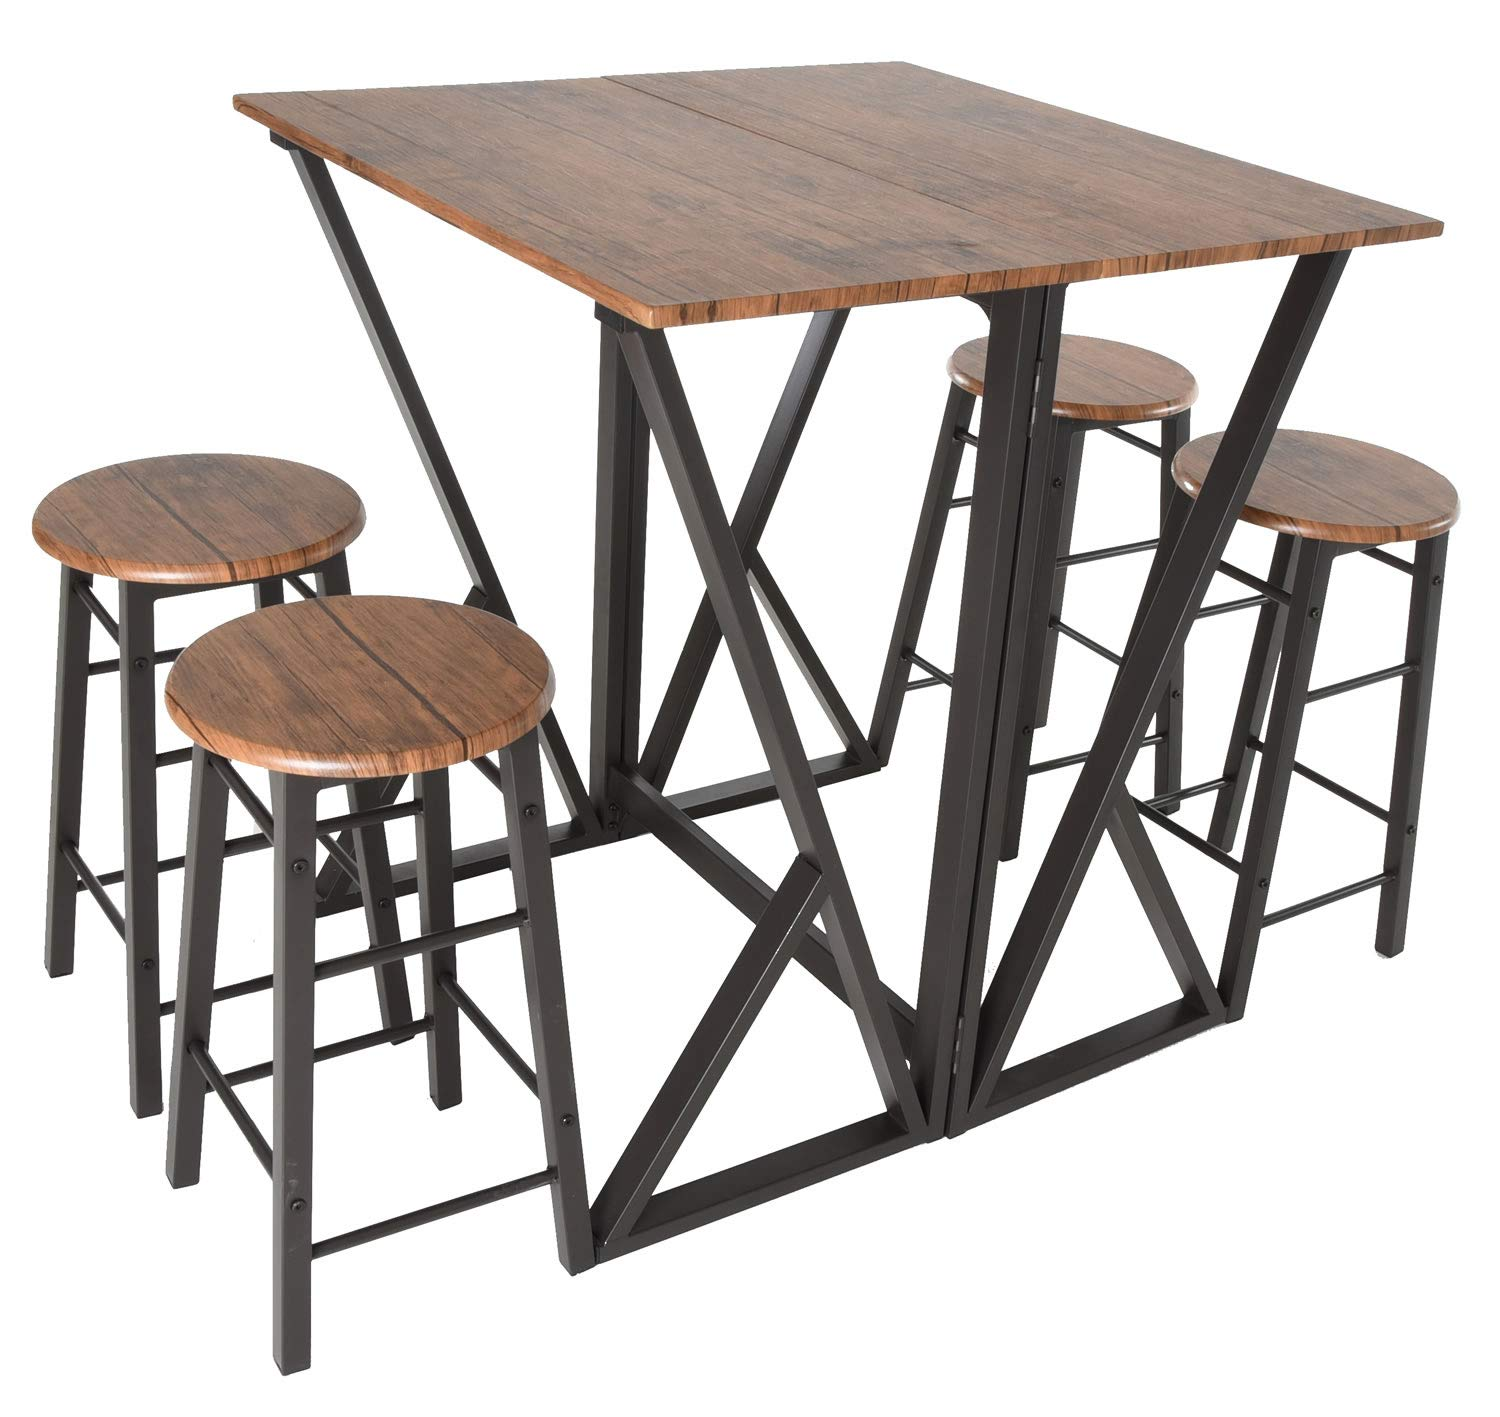 Zenvida 5 Piece Pub Dining Set Drop Leaf Bar Height Kitchen Table with 4 Stools by Zenvida